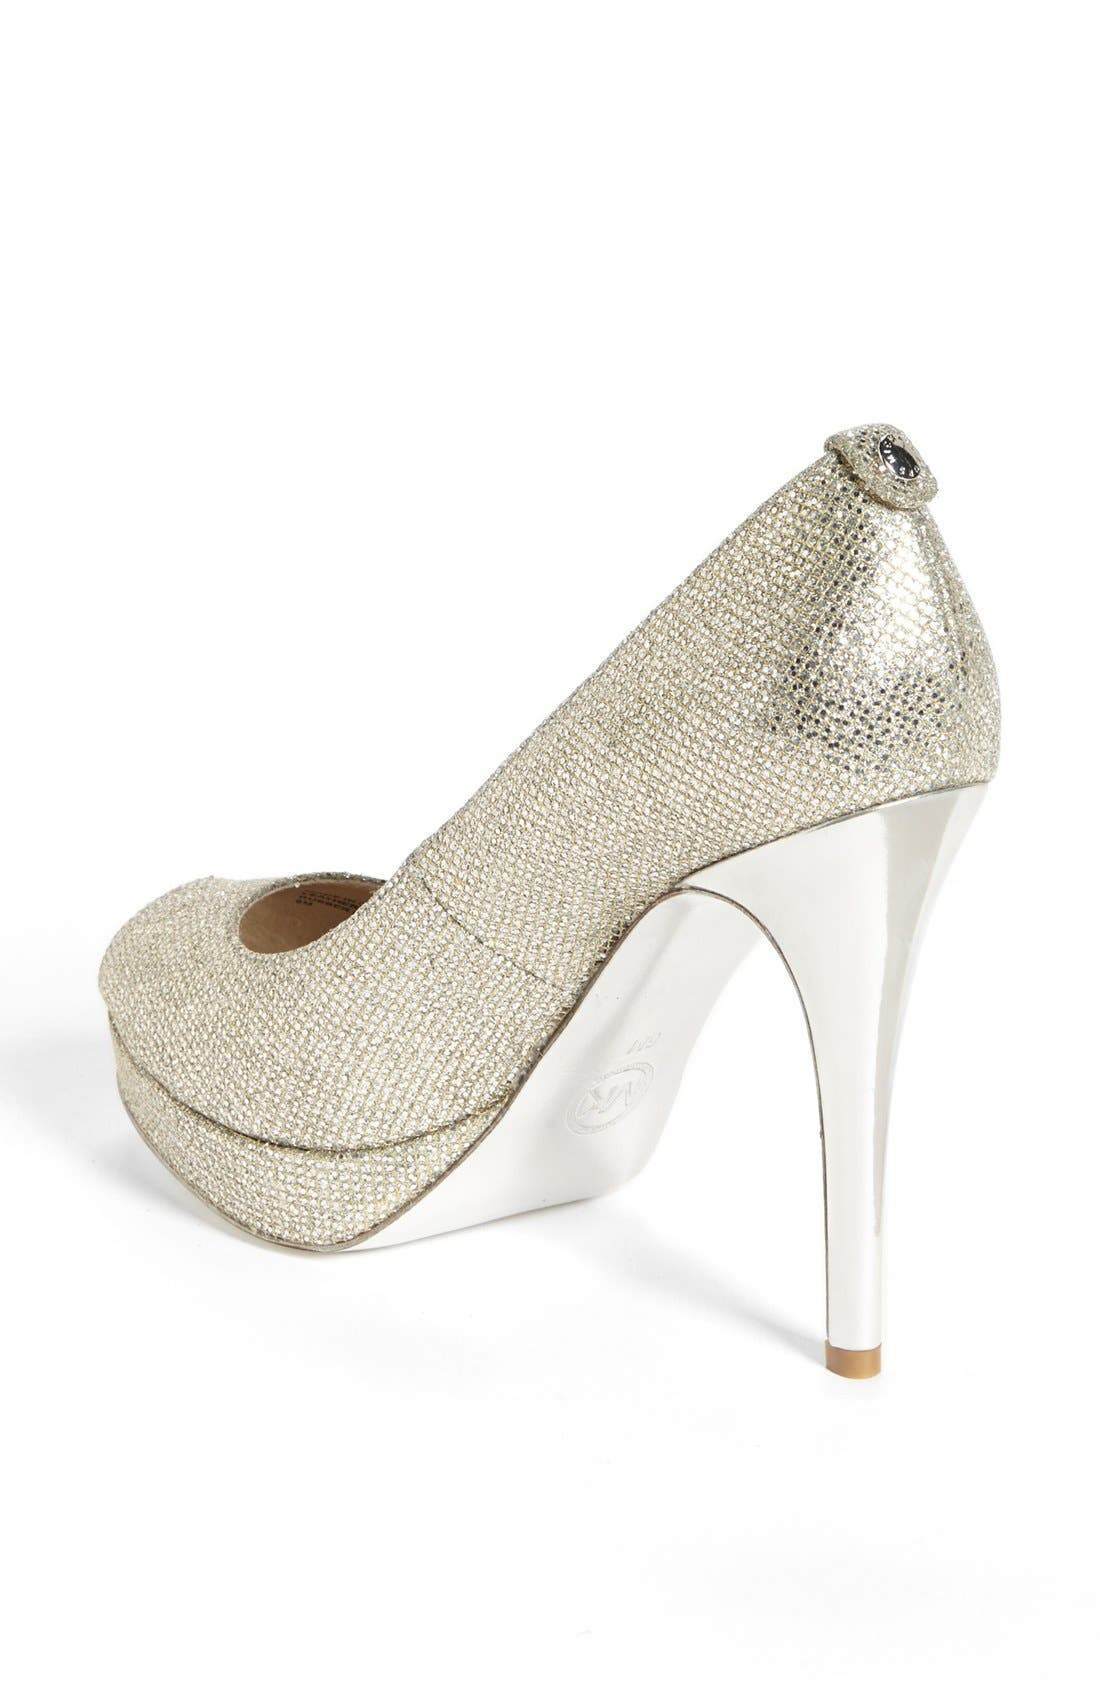 'York' Platform Pump,                             Alternate thumbnail 2, color,                             Silver